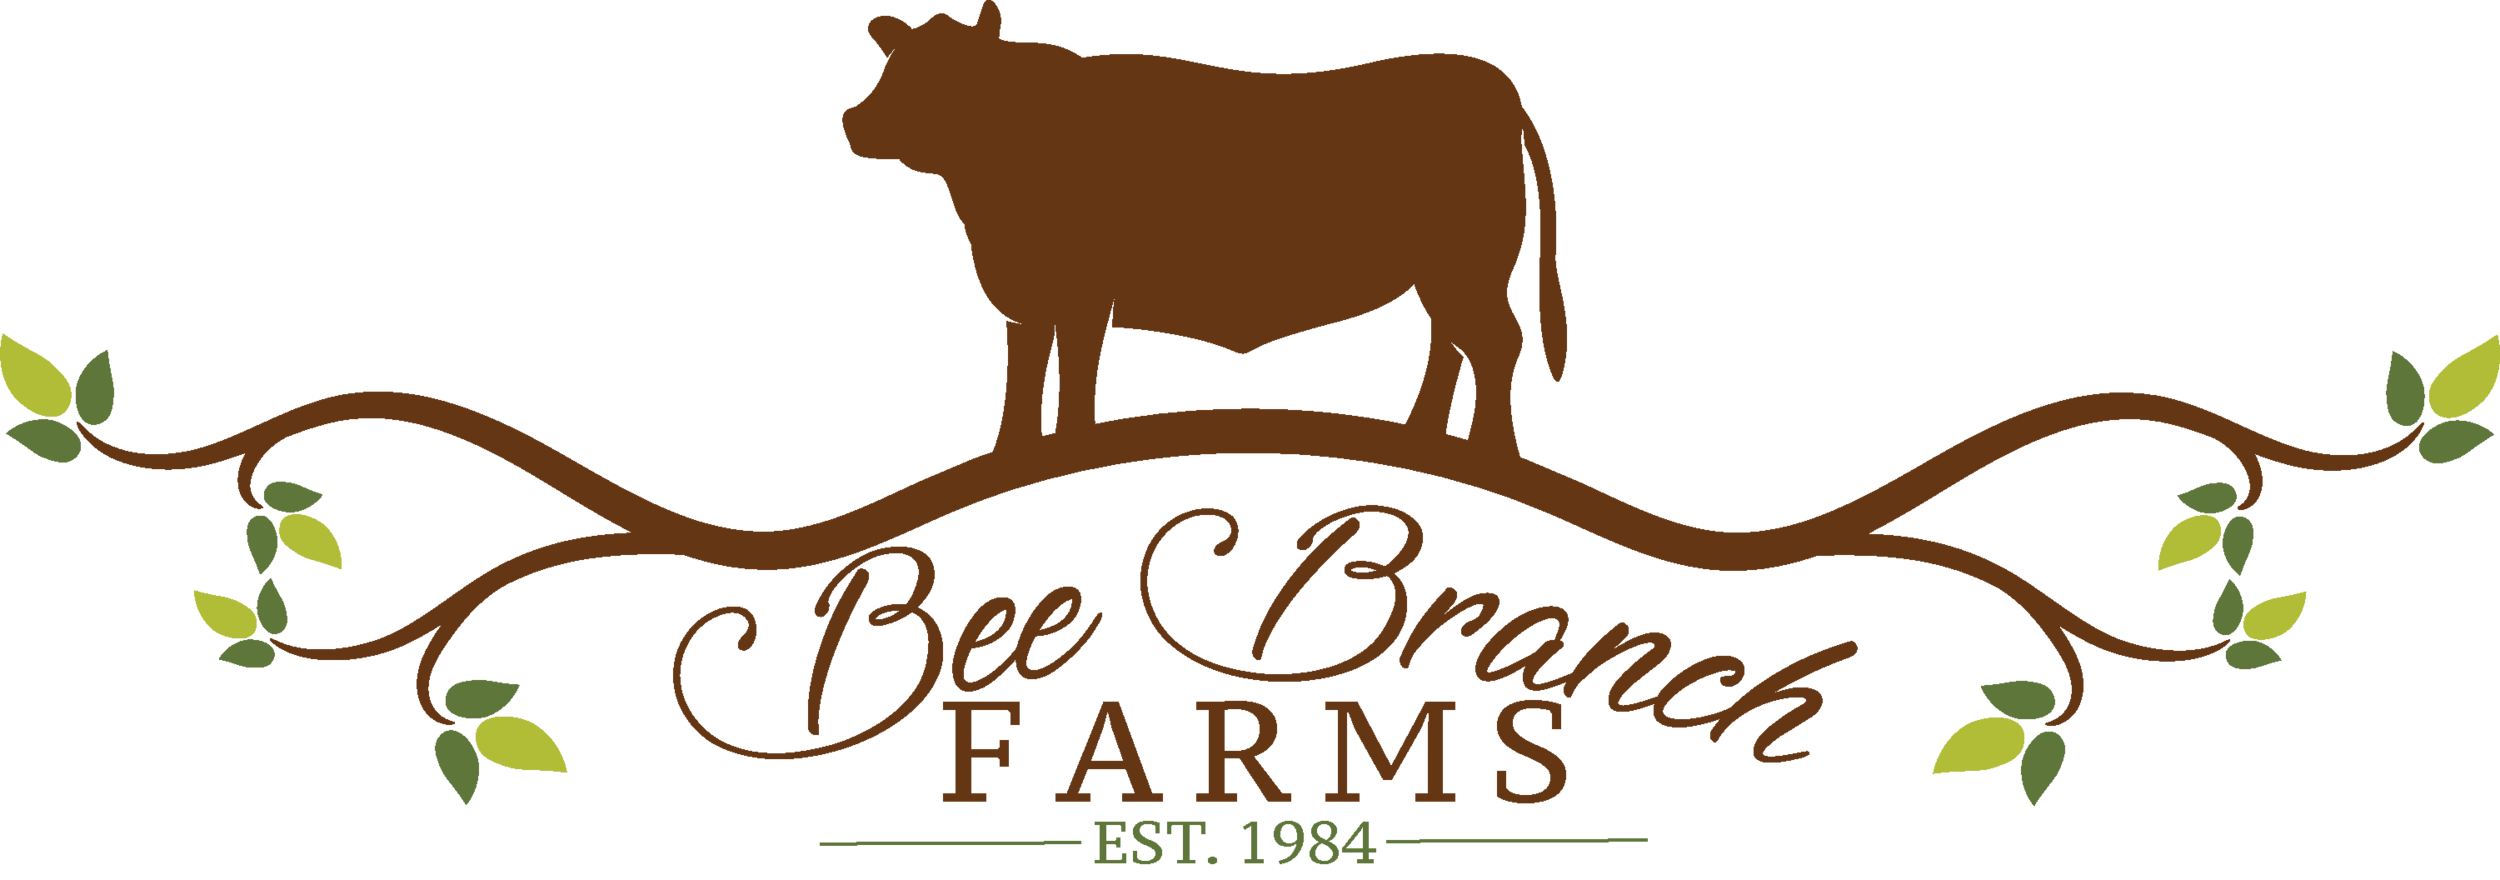 Bee Branch Logo.png